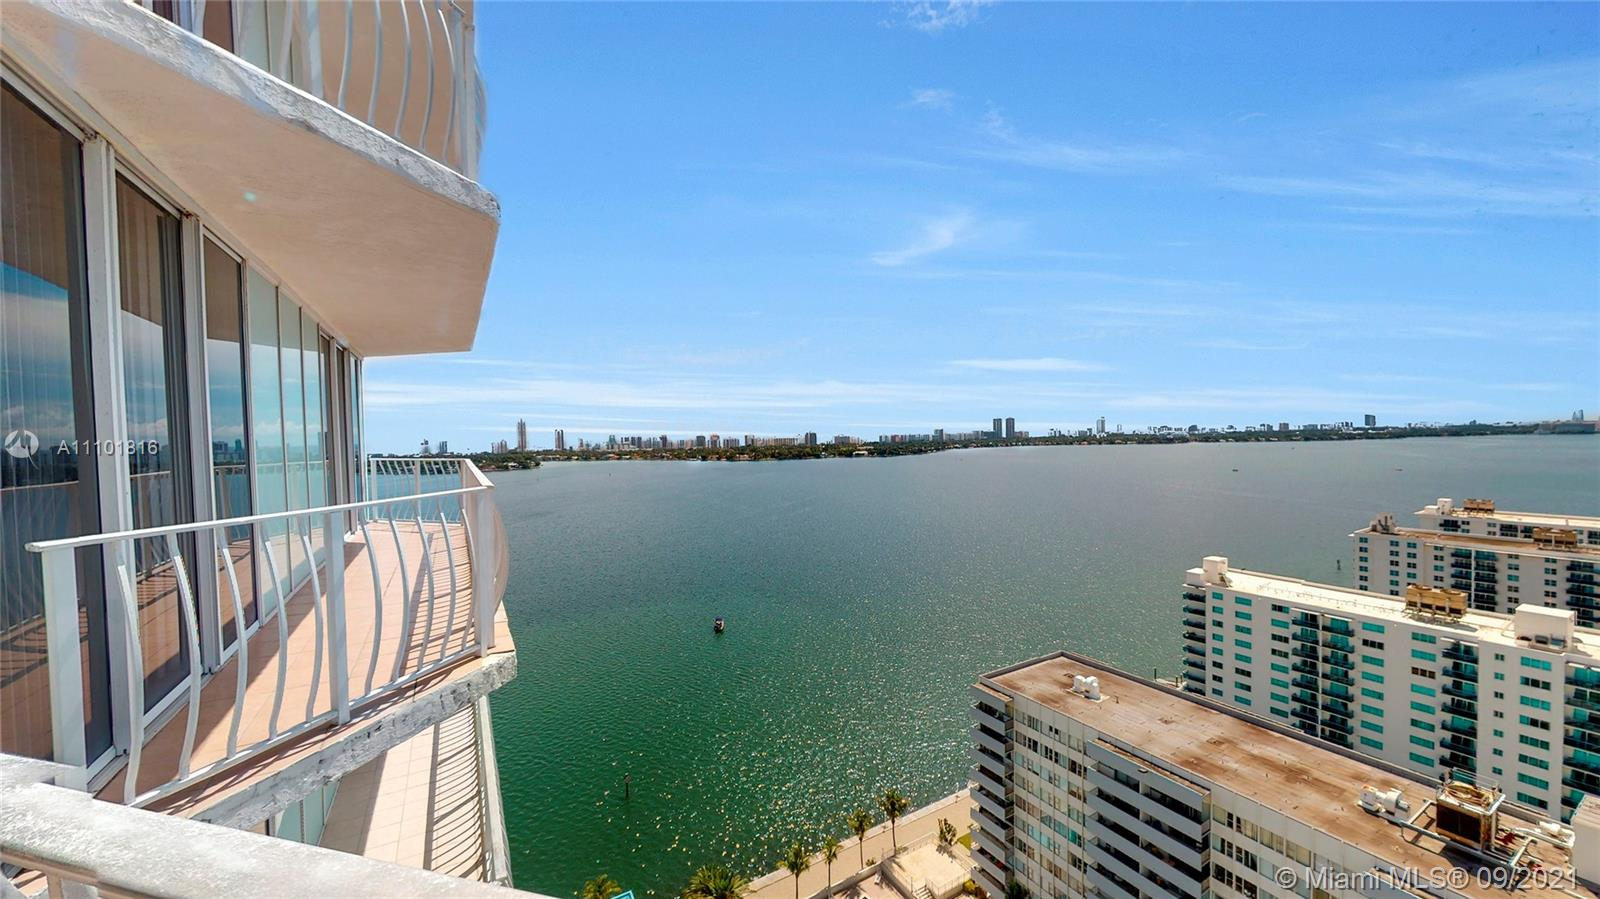 Condo For Sale at THE GRANDVIEW PALACE COND